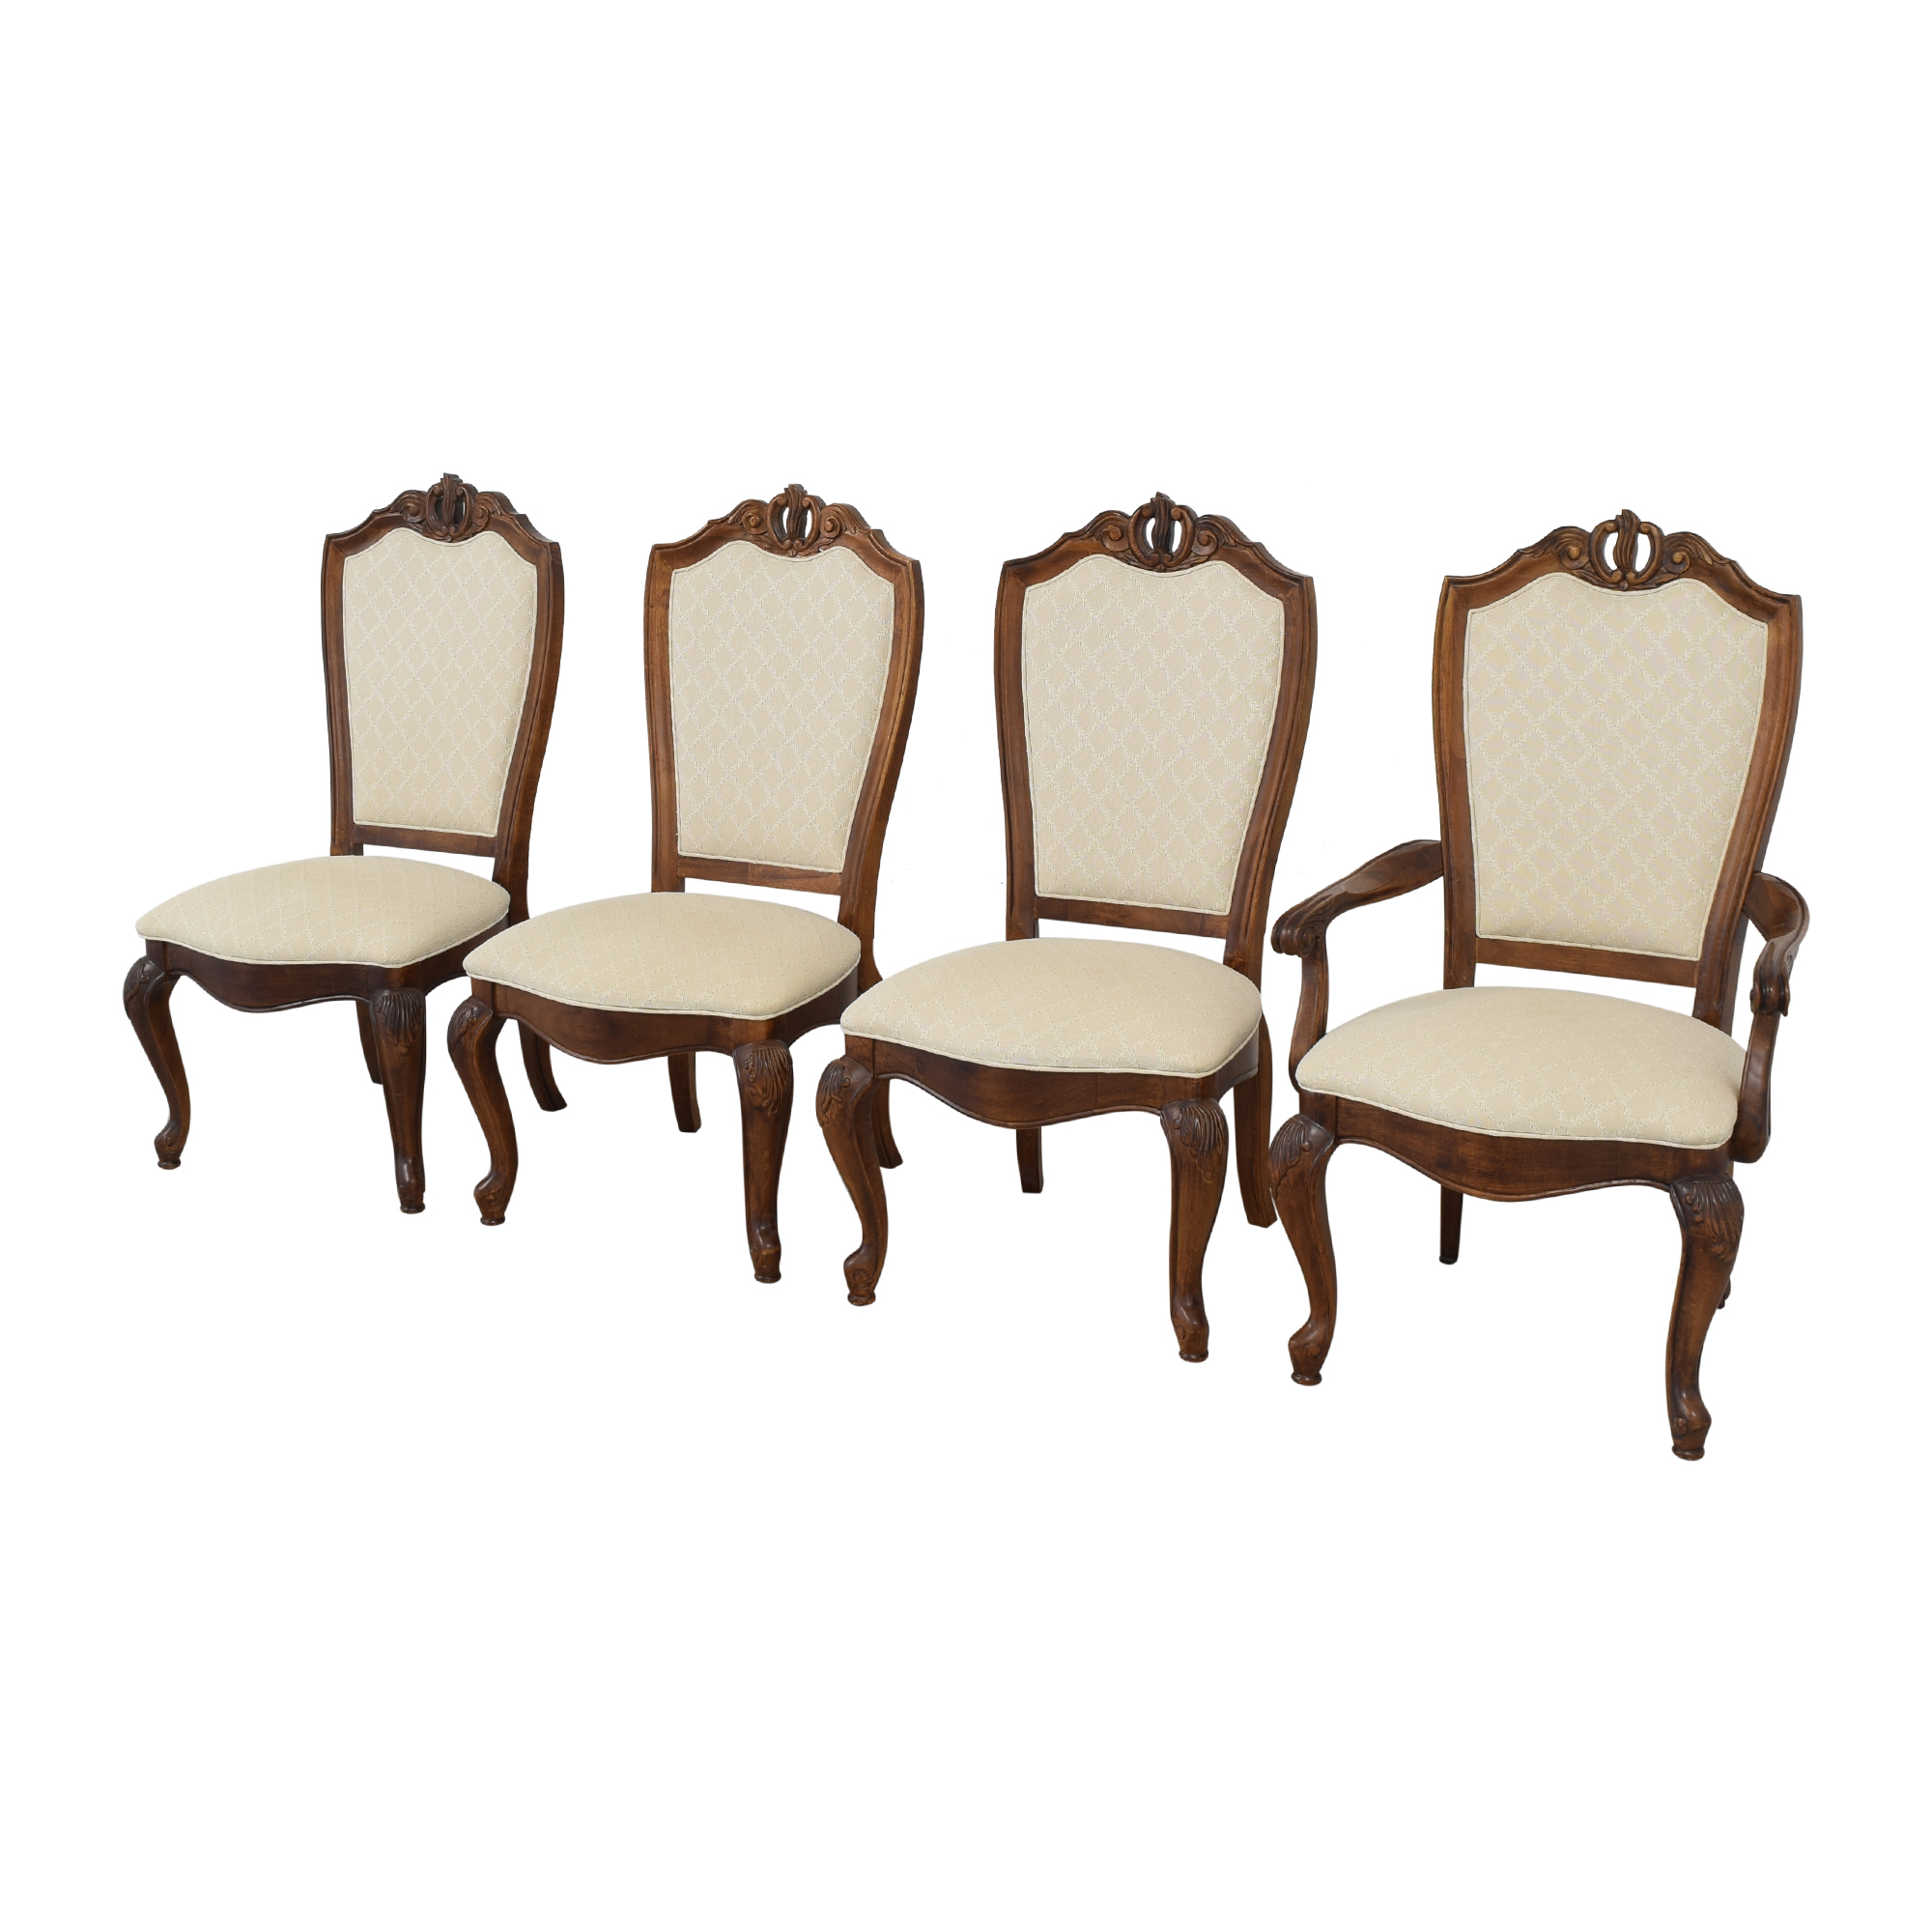 American Drew Bob Mackie for American Drew Dining Chairs on sale